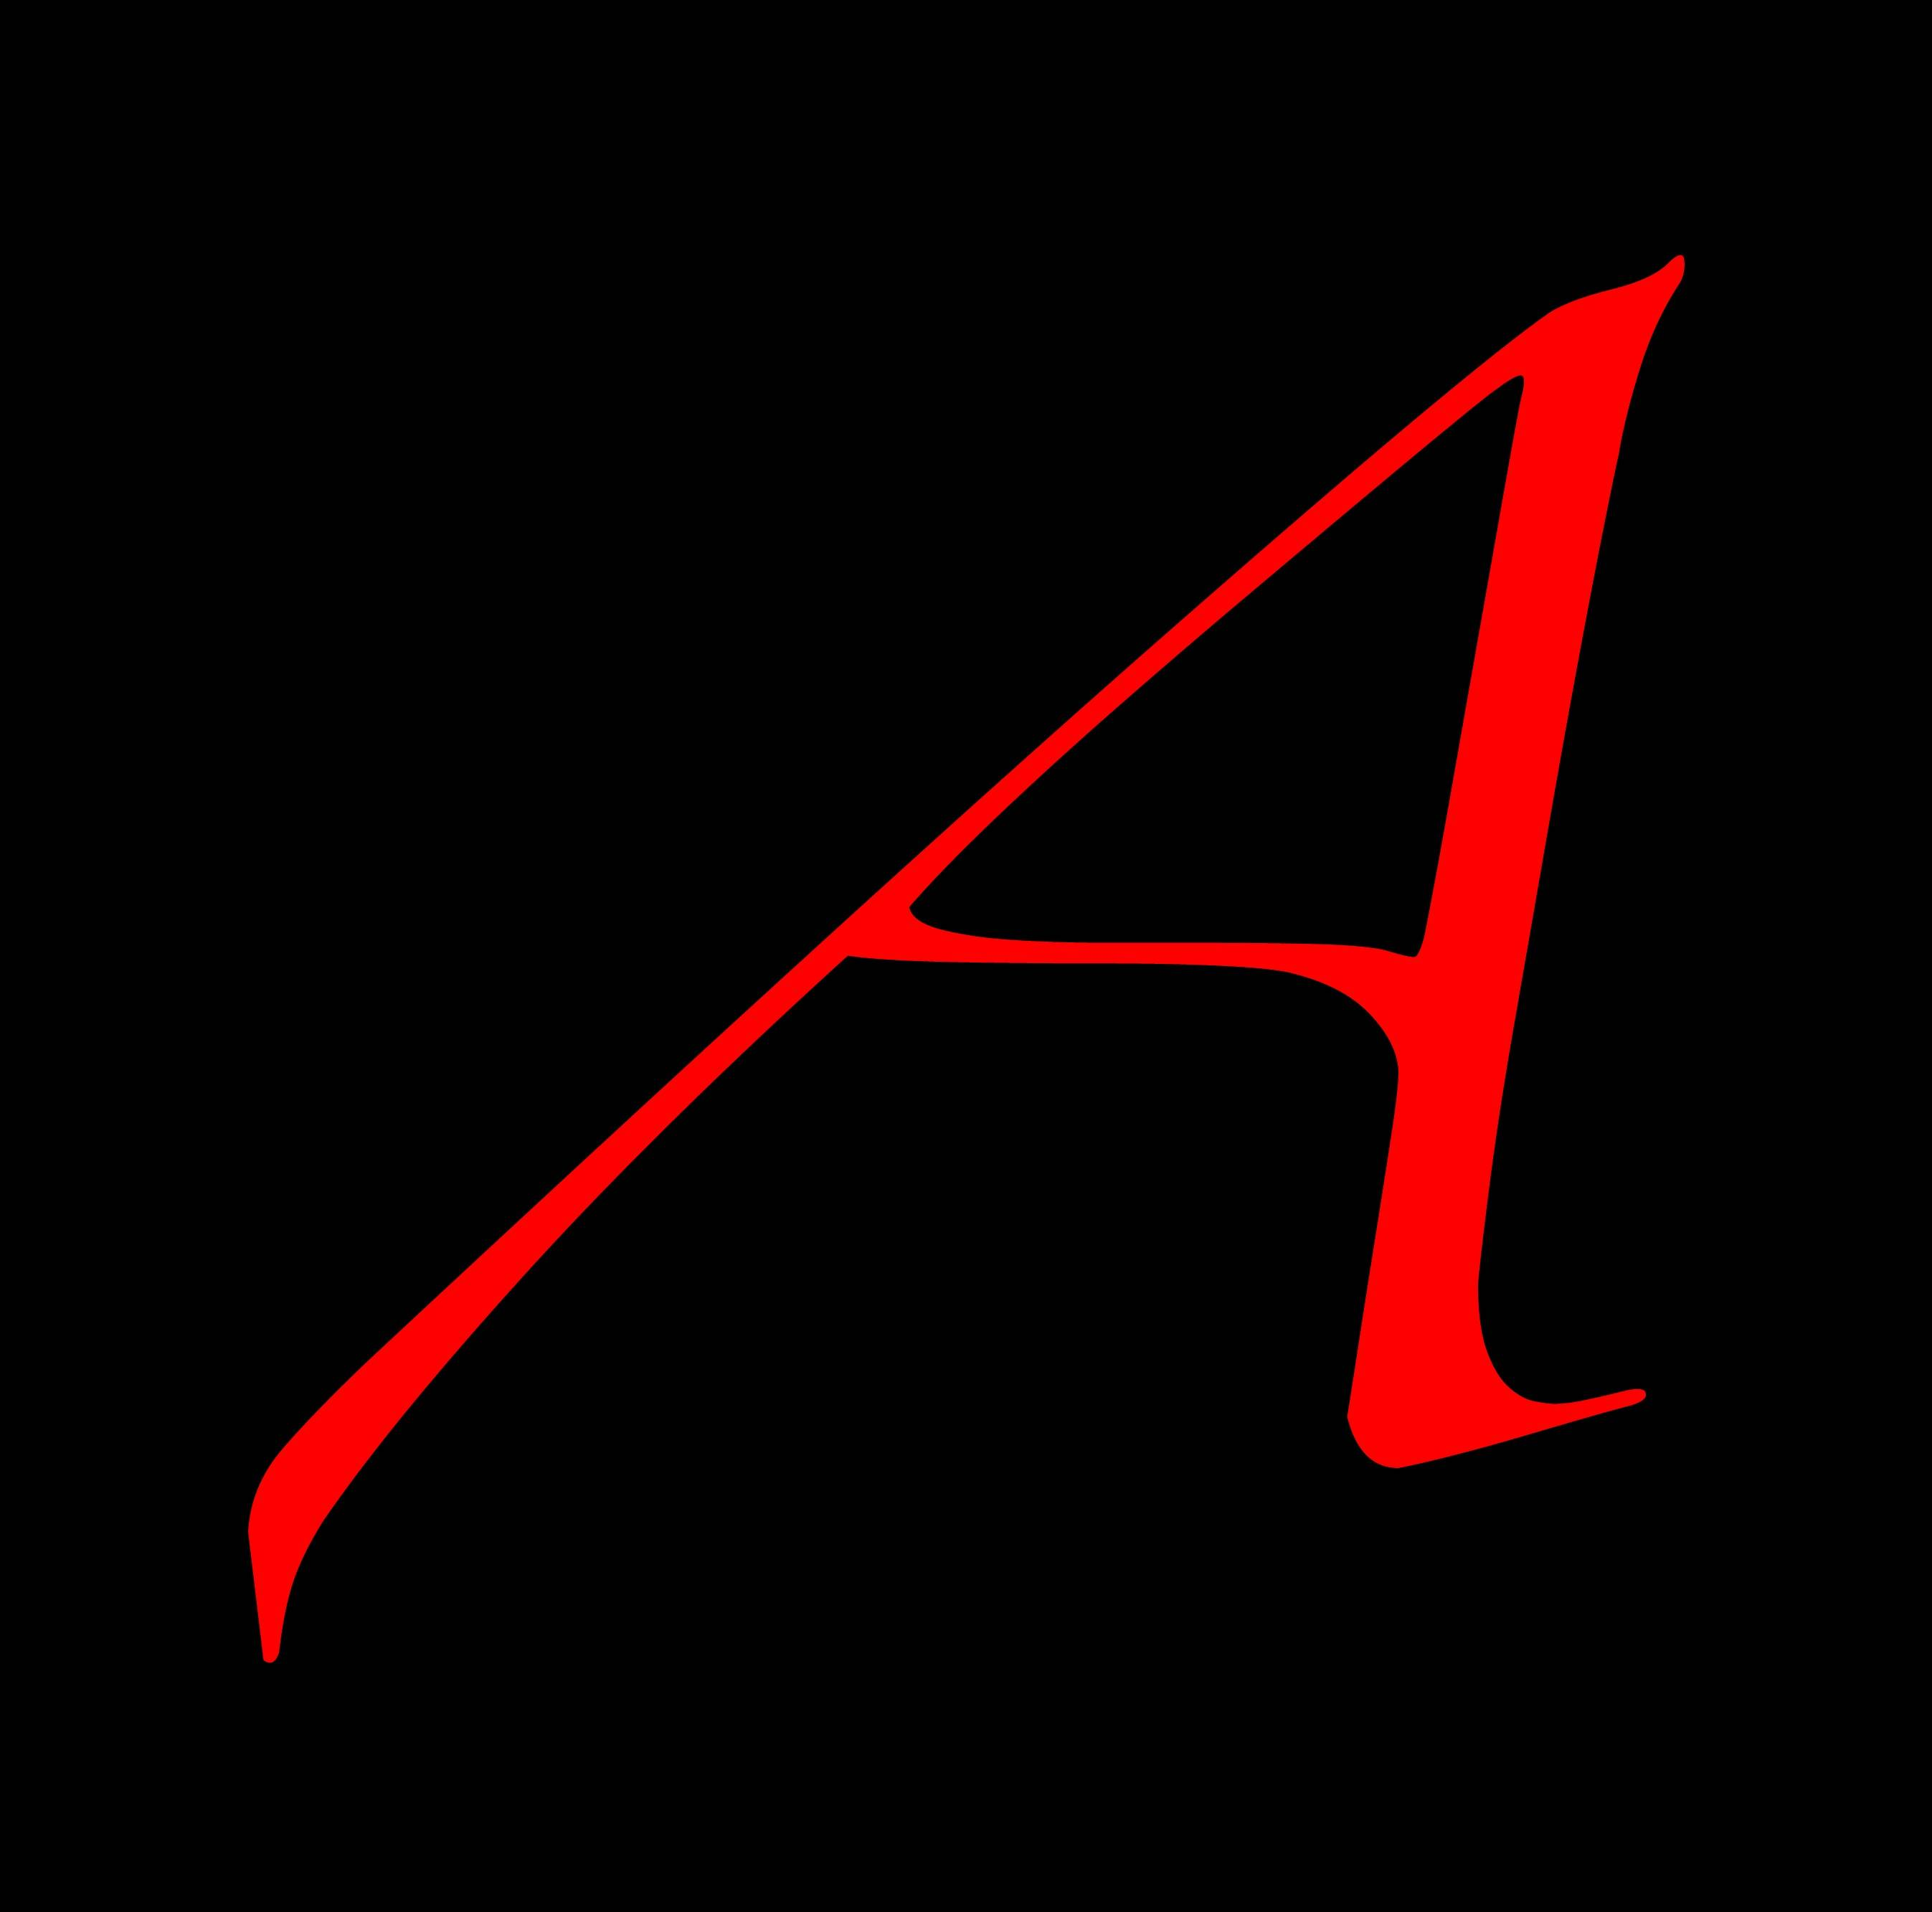 A Is For Awesome Re Reading The Scarlet Letter